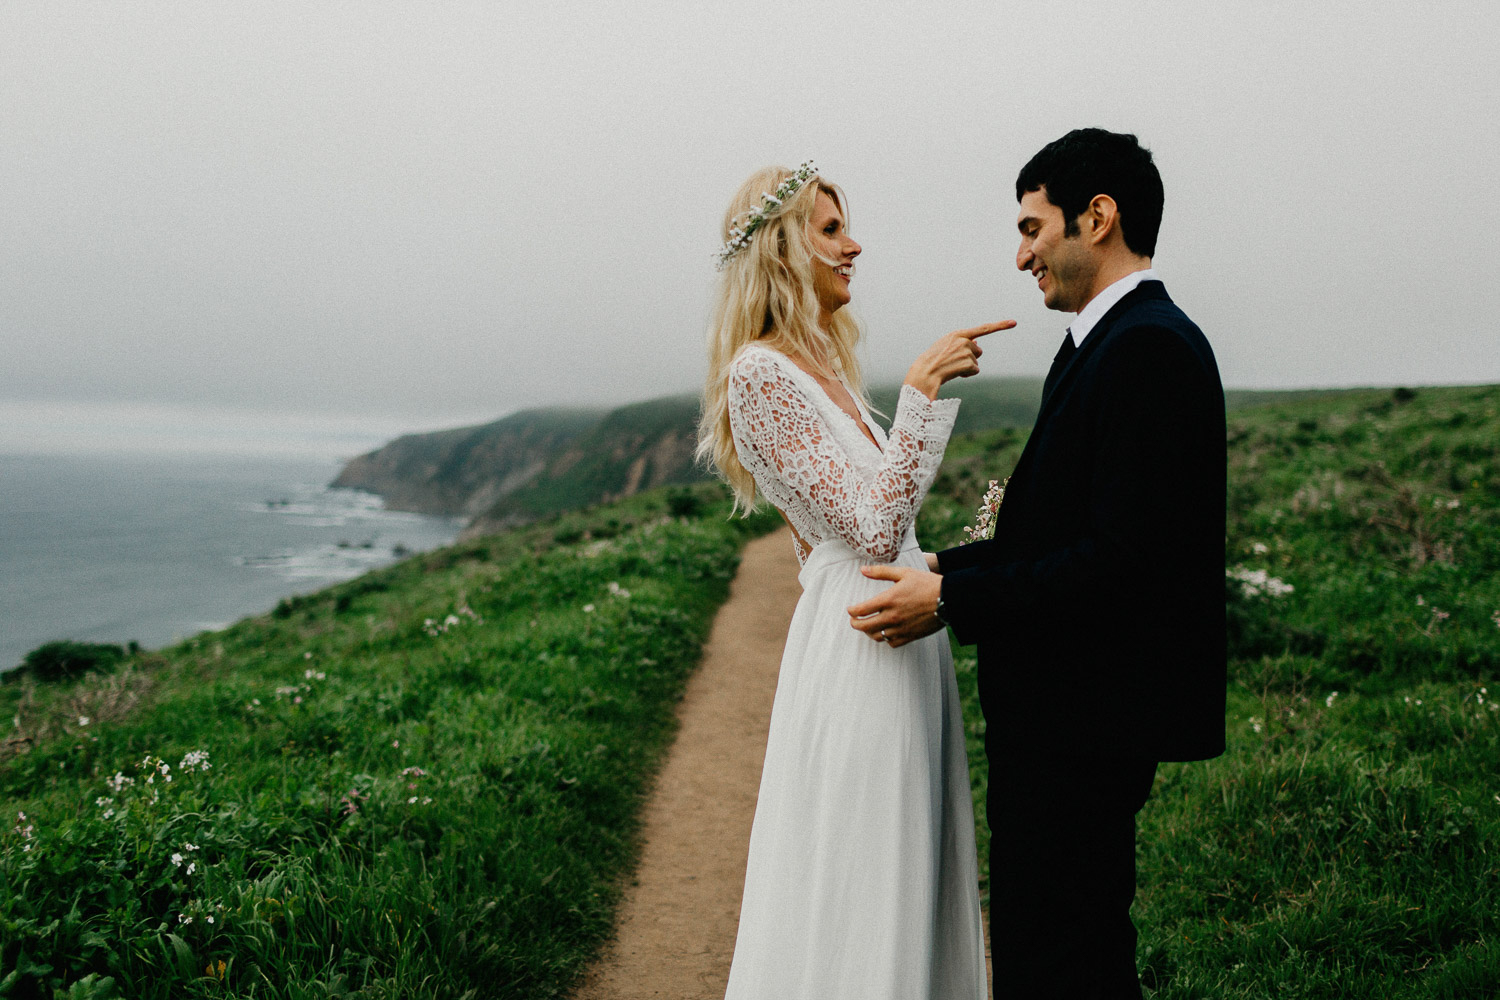 Image of bride points to groom and smiles